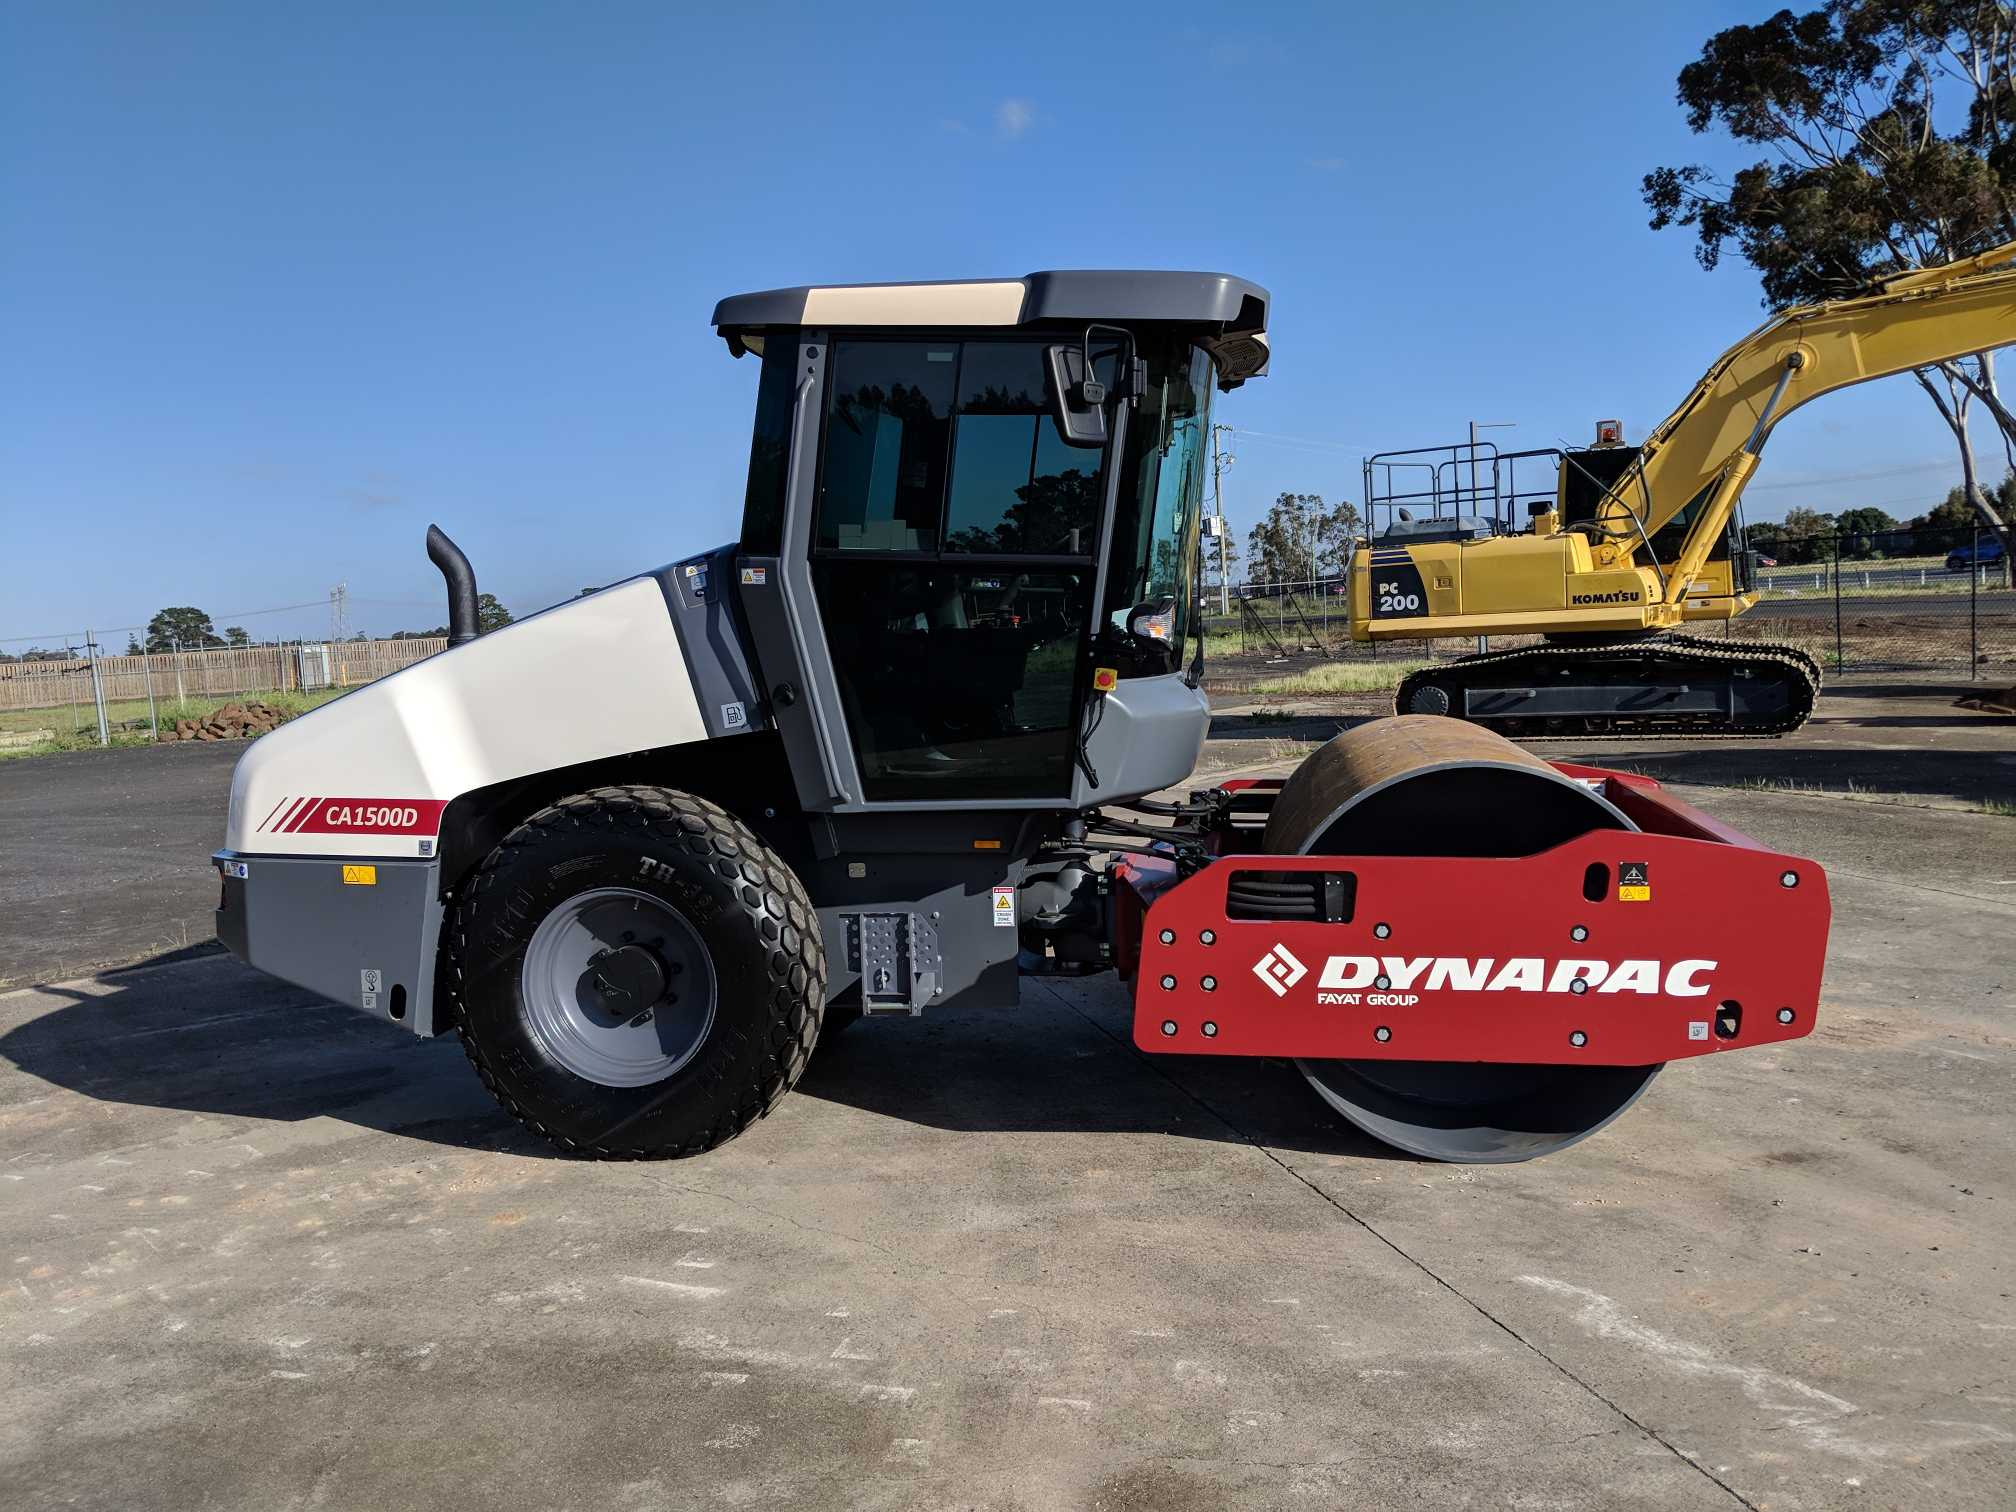 Hire 14 Ton Smooth Single Drum Roller - Enclosed Airconditioned Cabin